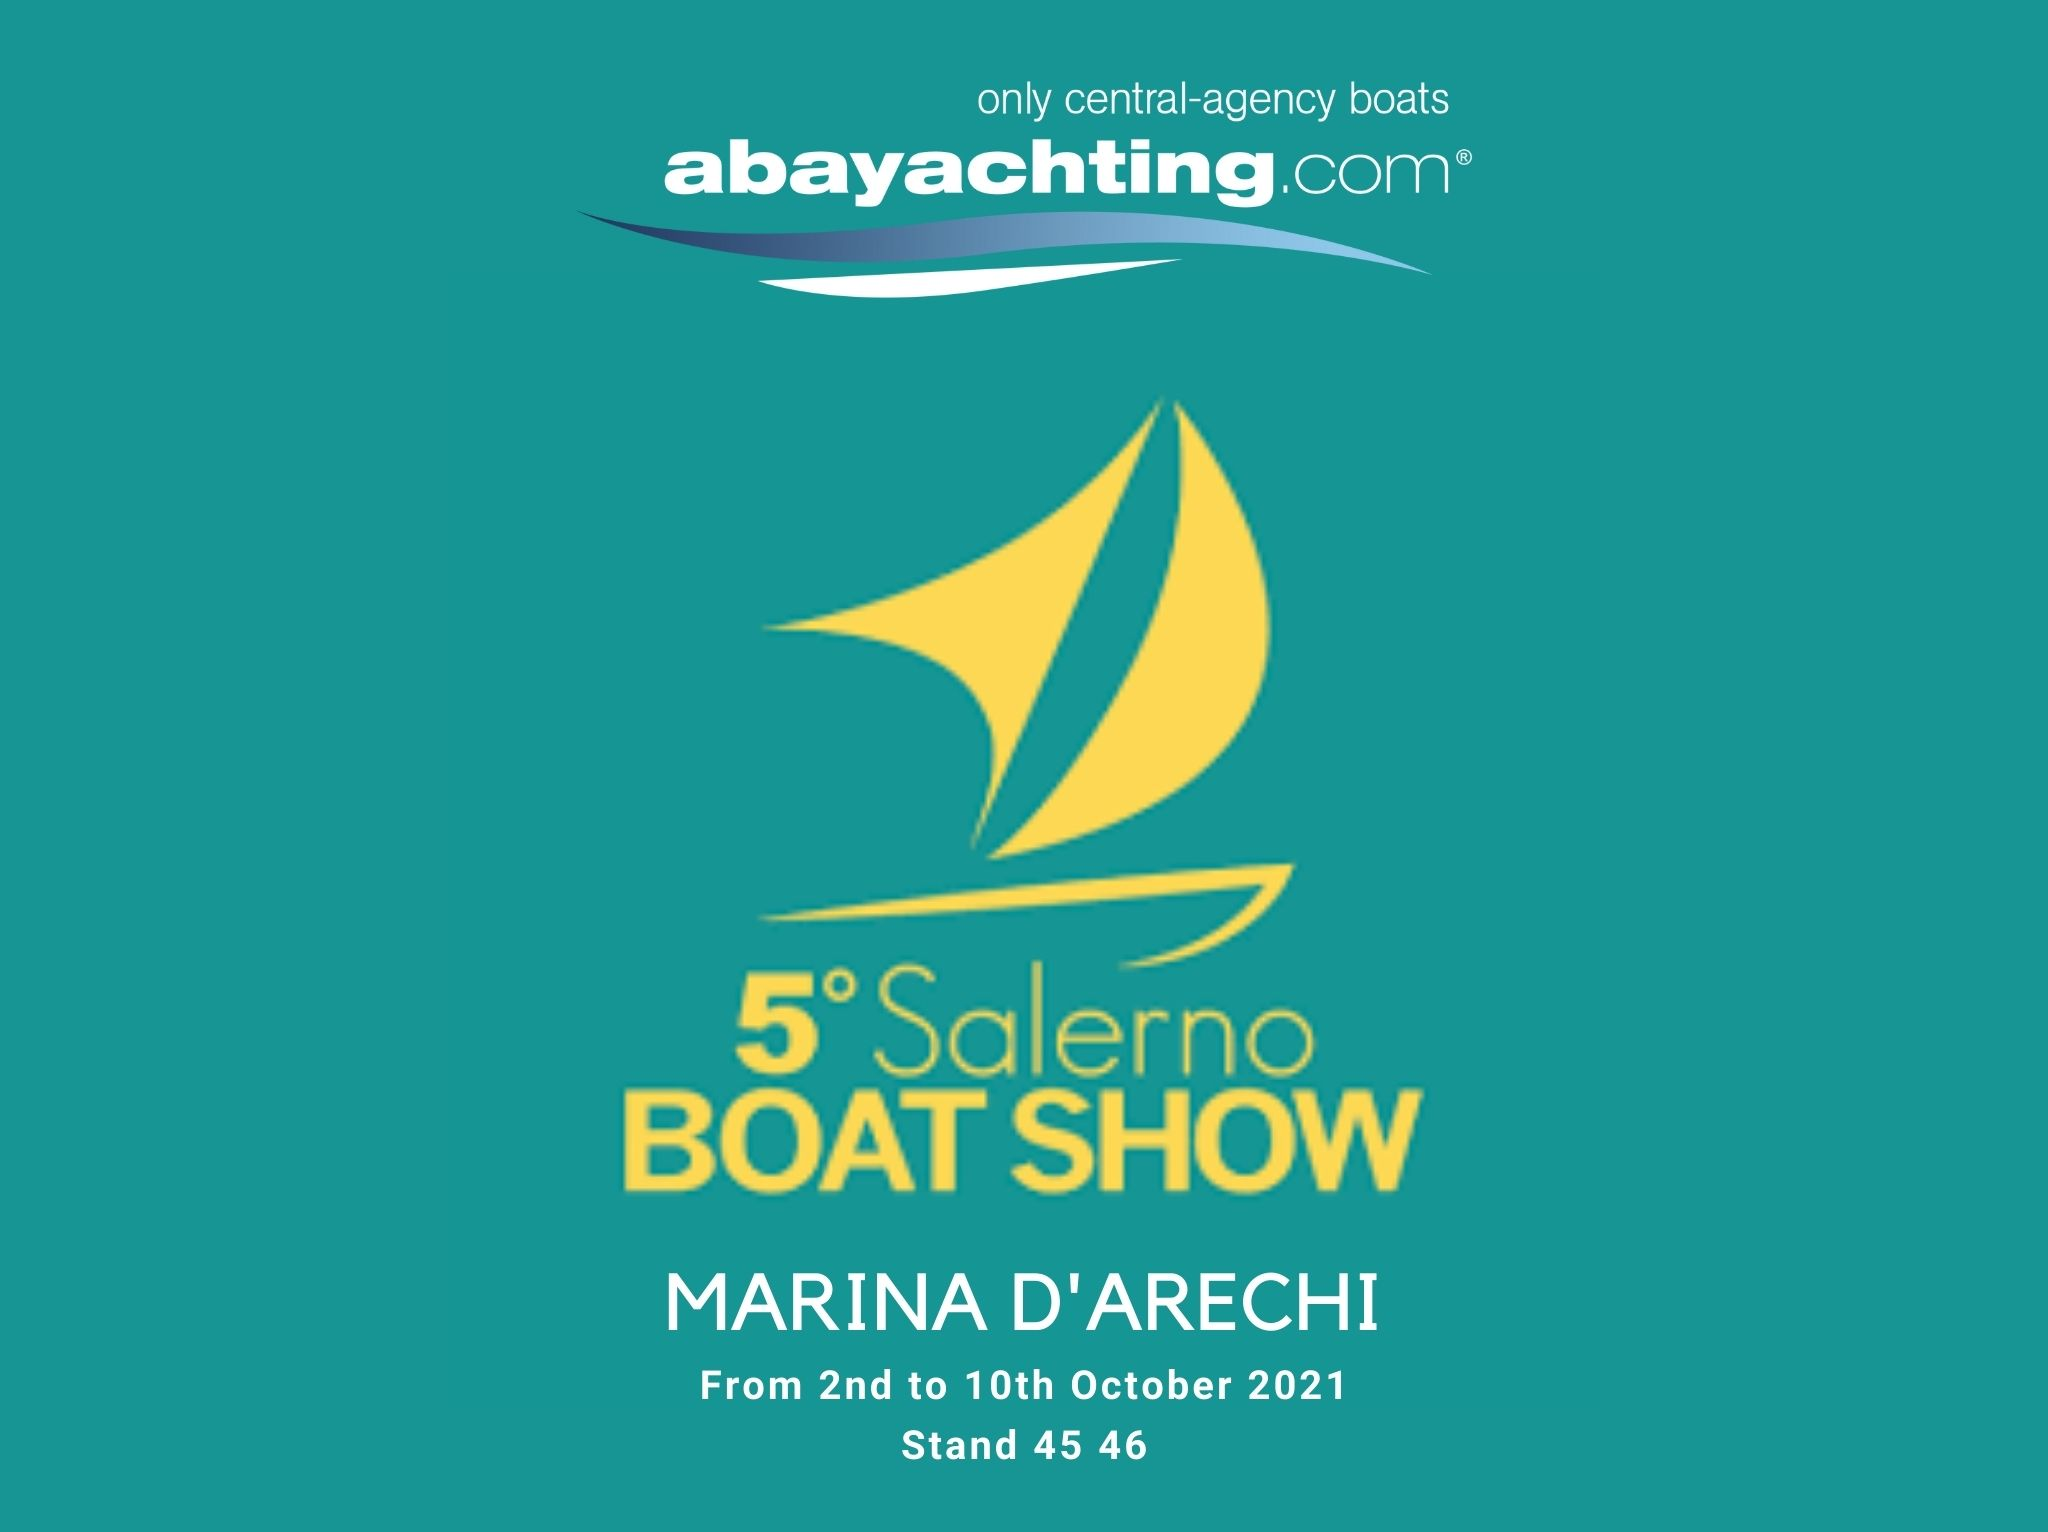 Abayachting at the 5th Salerno Boat Show!